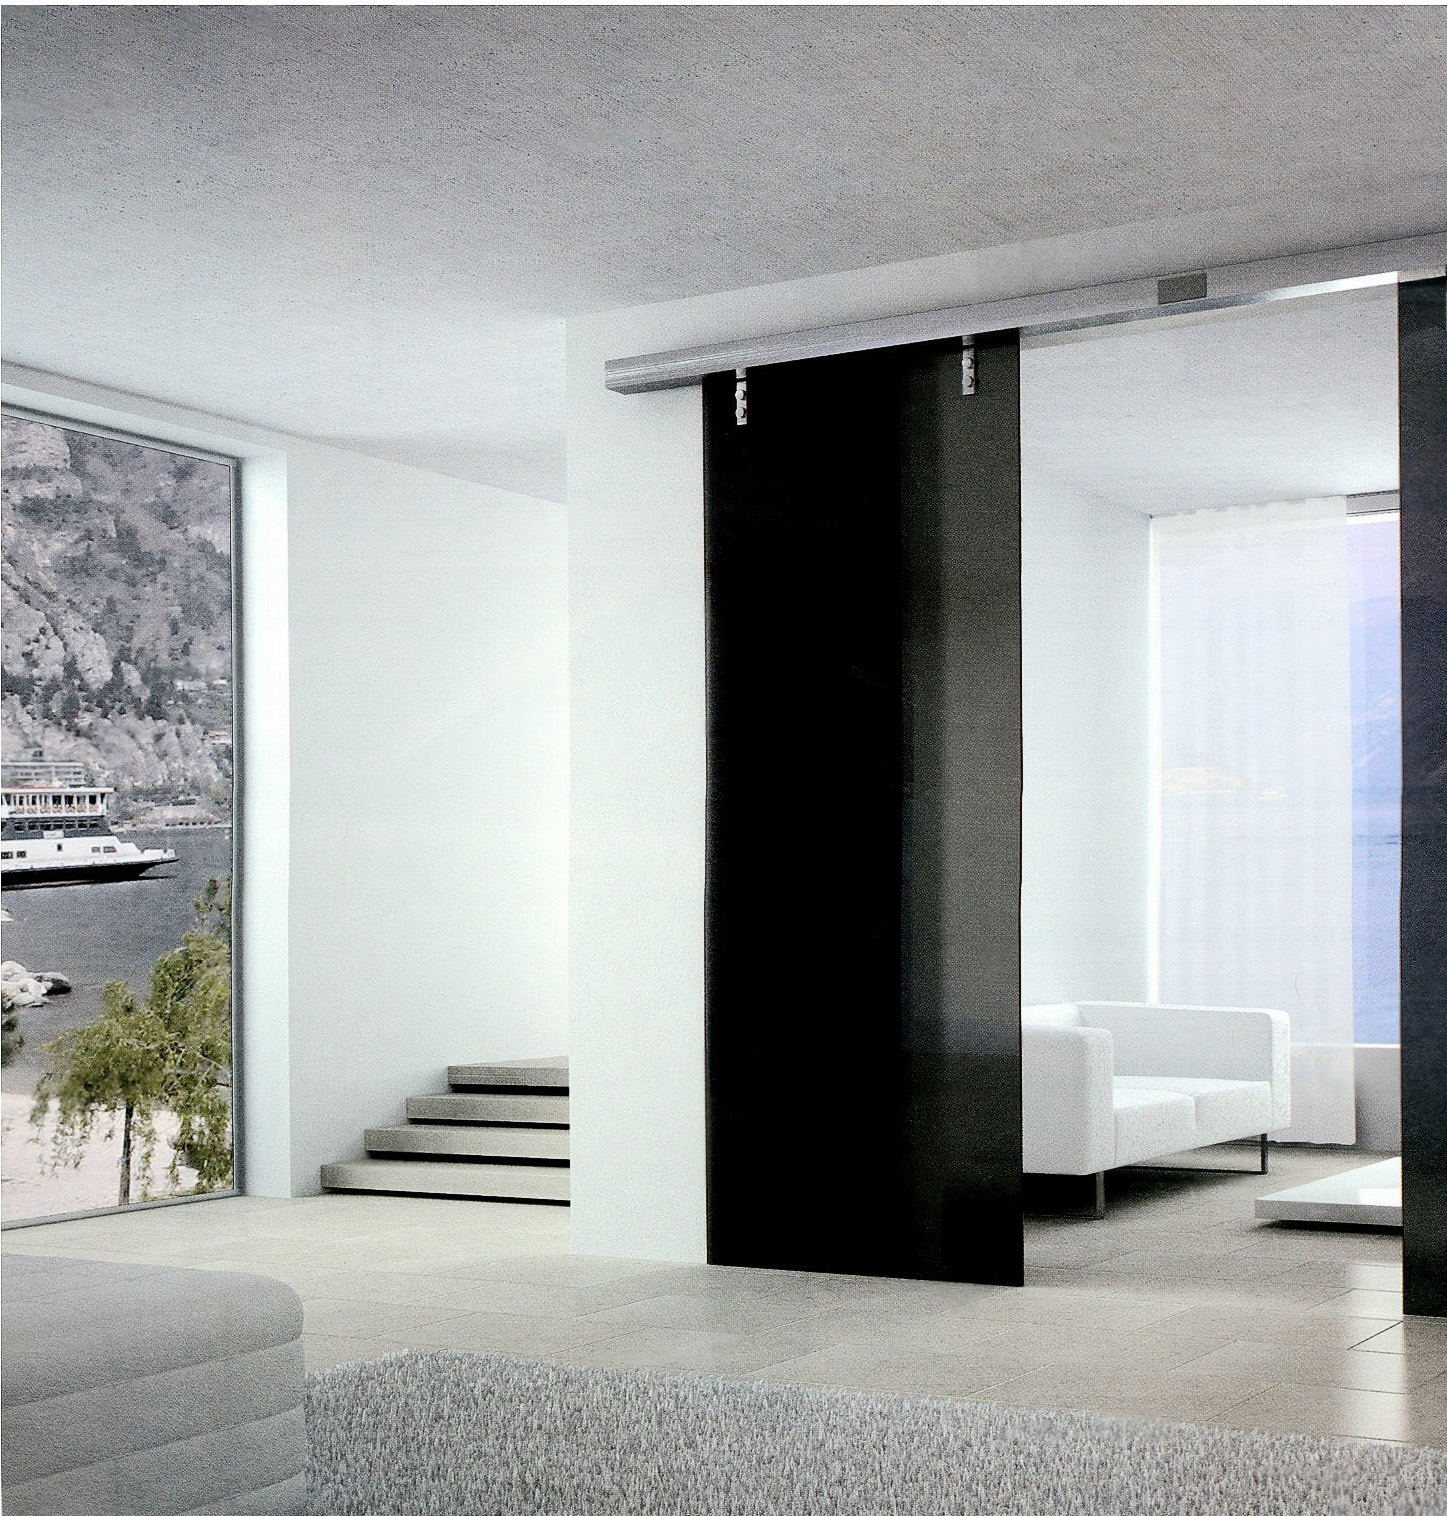 Sliding Doors Design Exteriors & Sliding Door Hardware Wood Sliding door » Design and Ideas pezcame.com